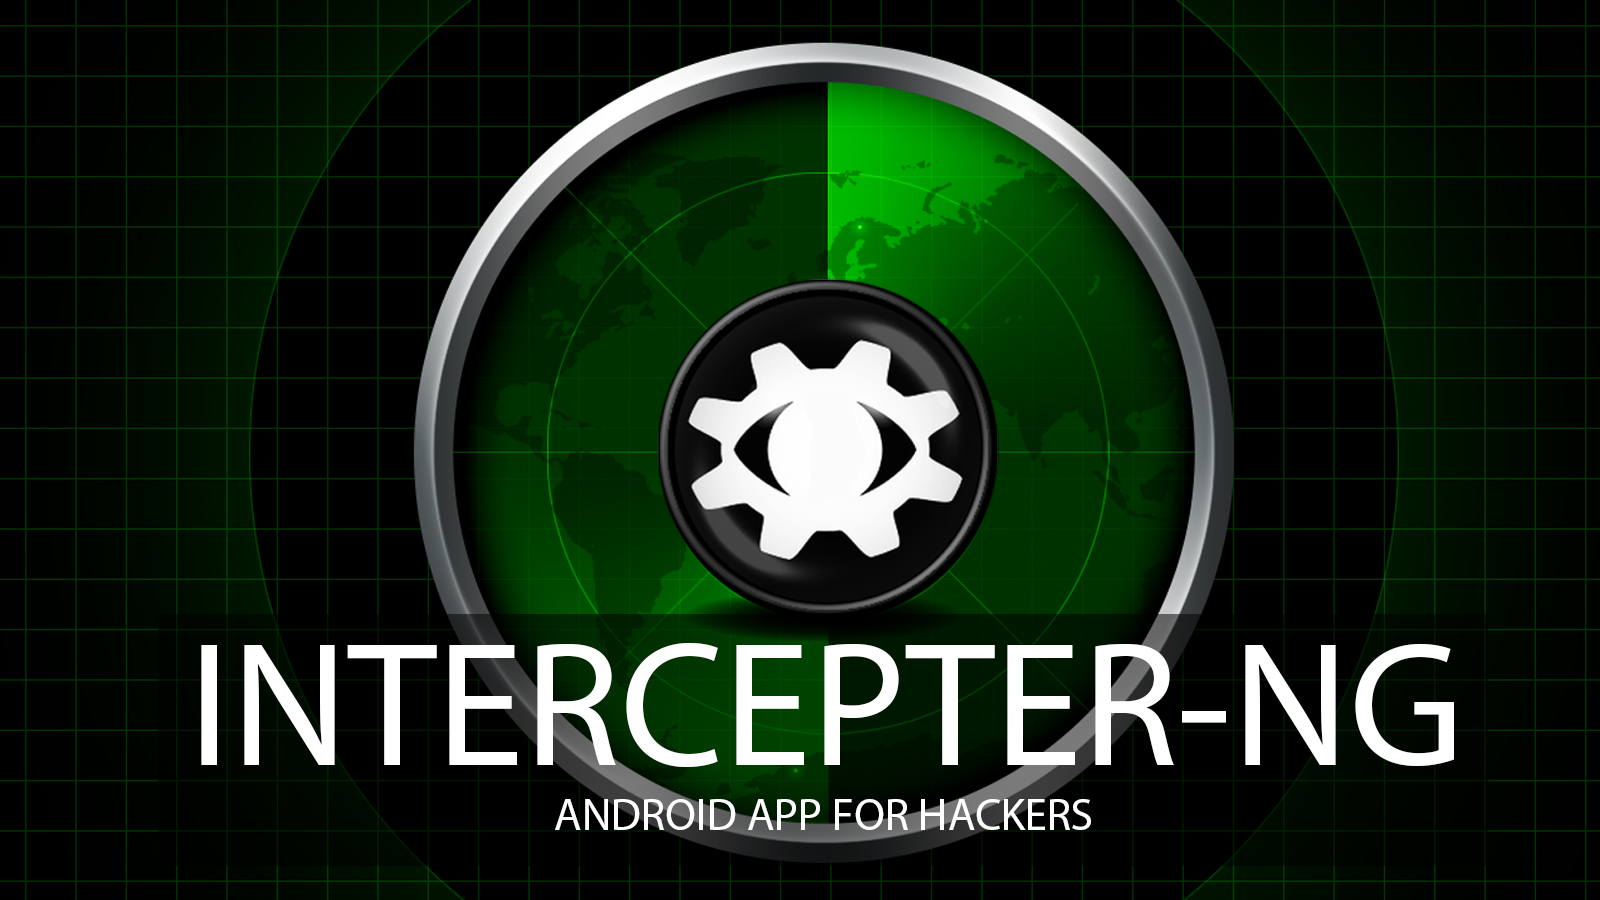 intercepter apk